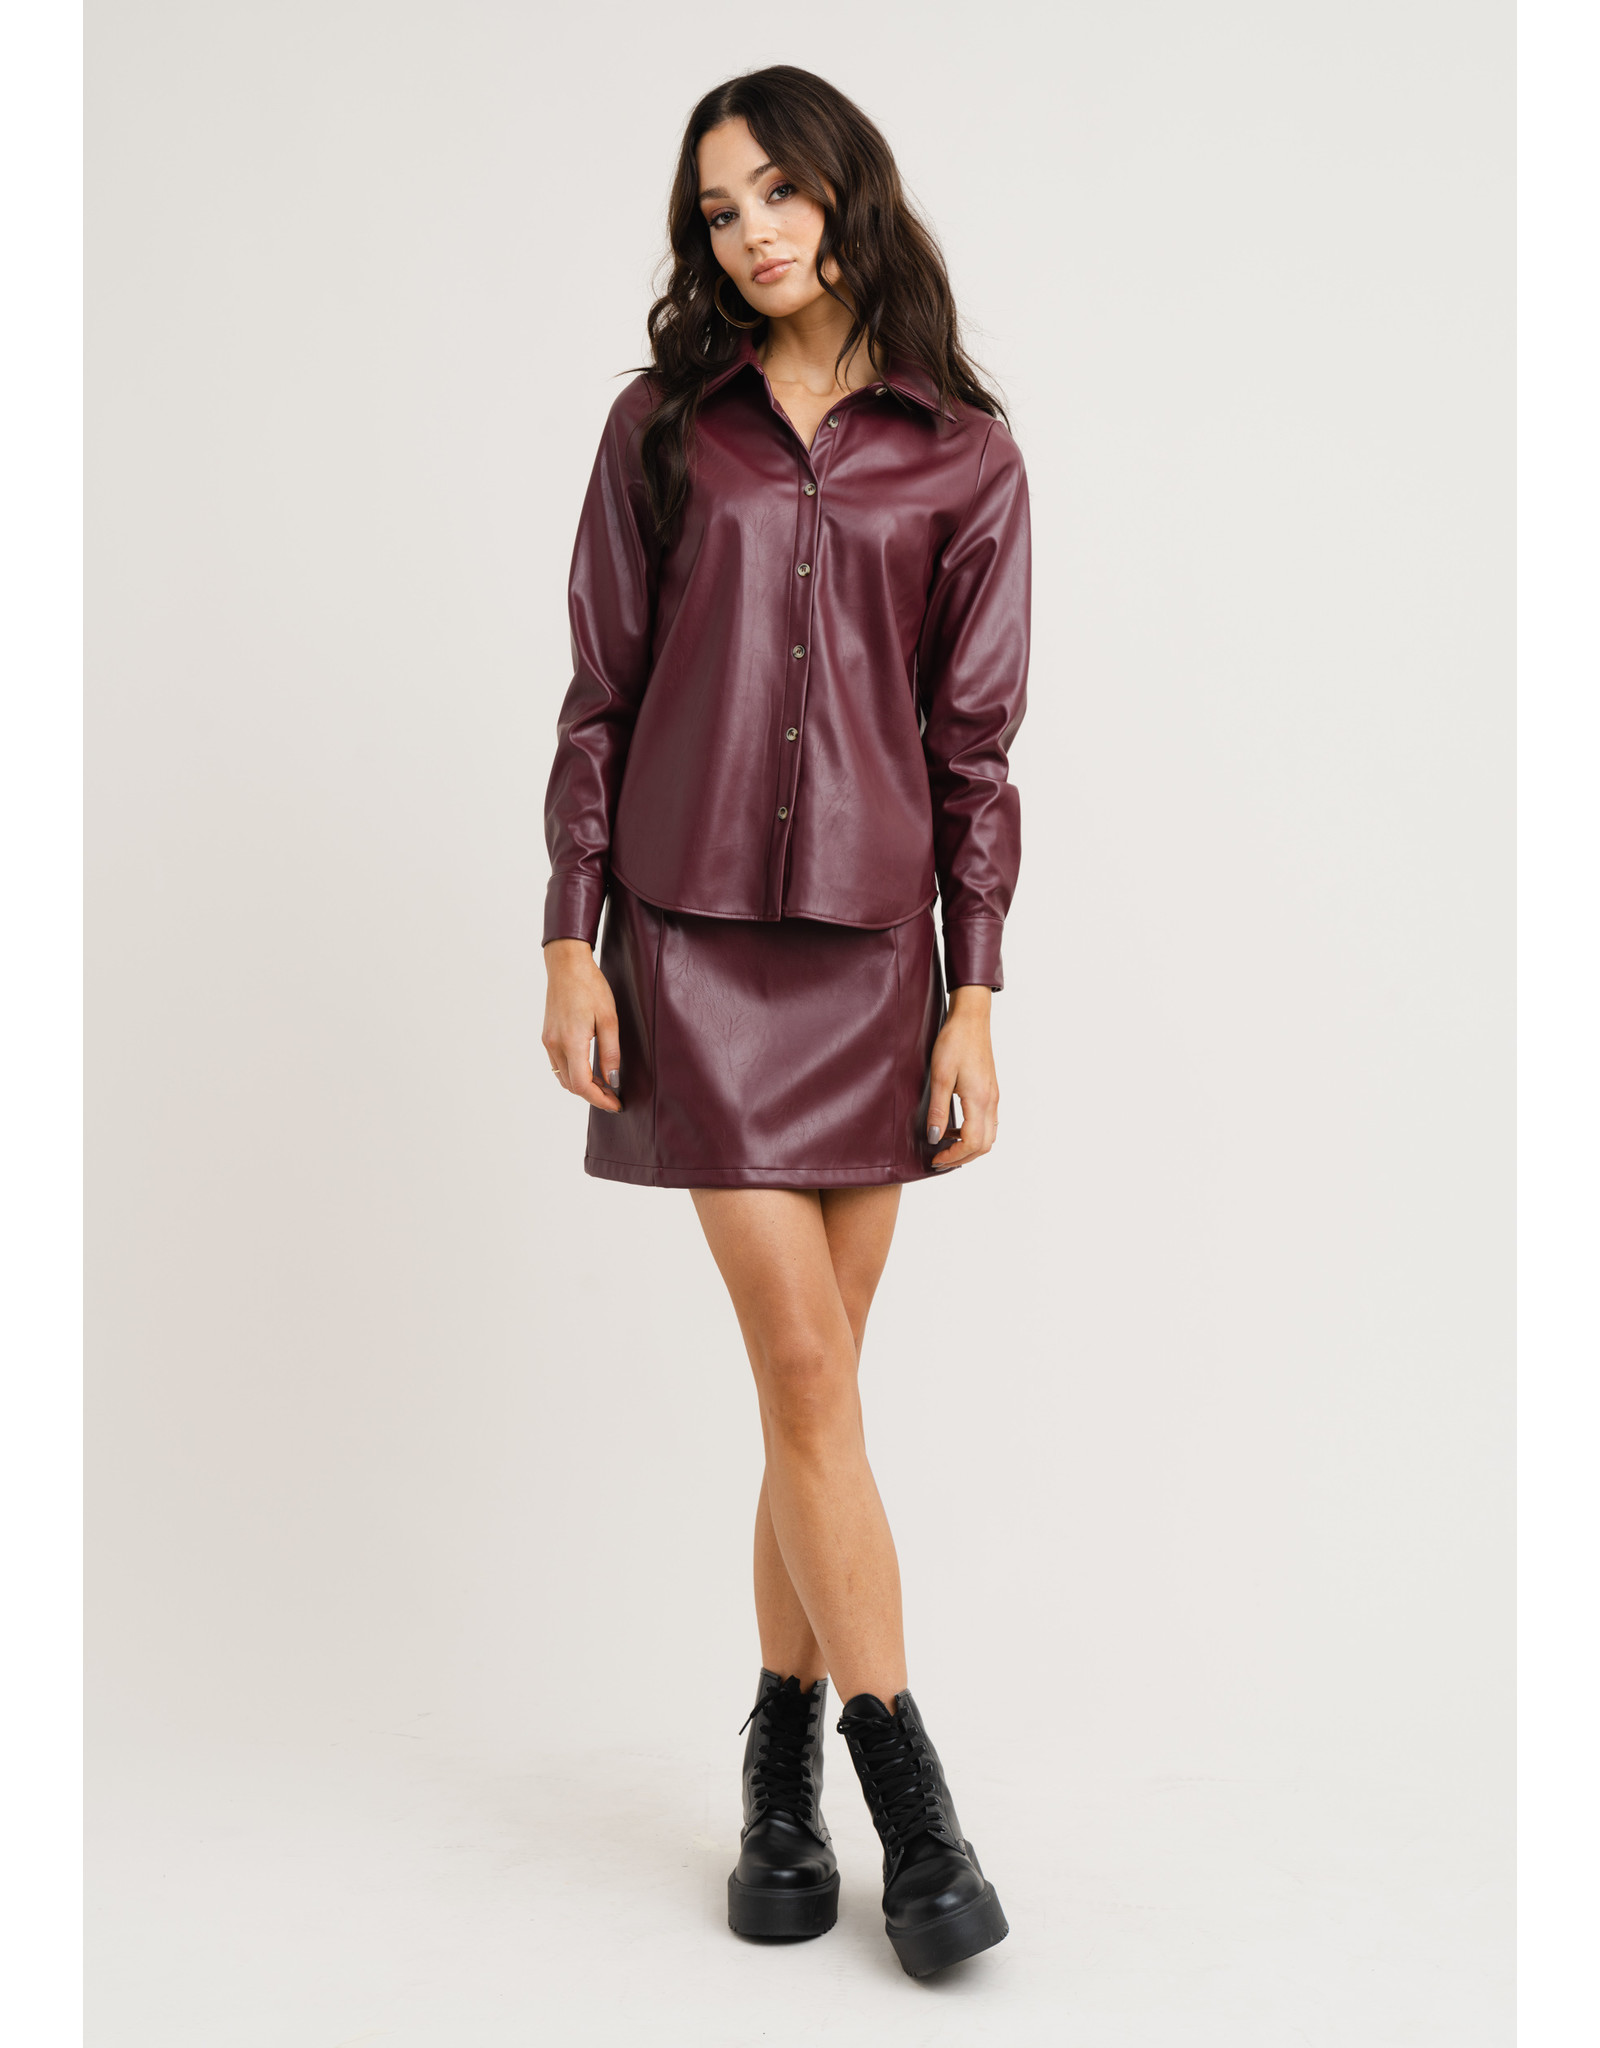 TILDA LEATHER LOOK SHIRT WINE RED